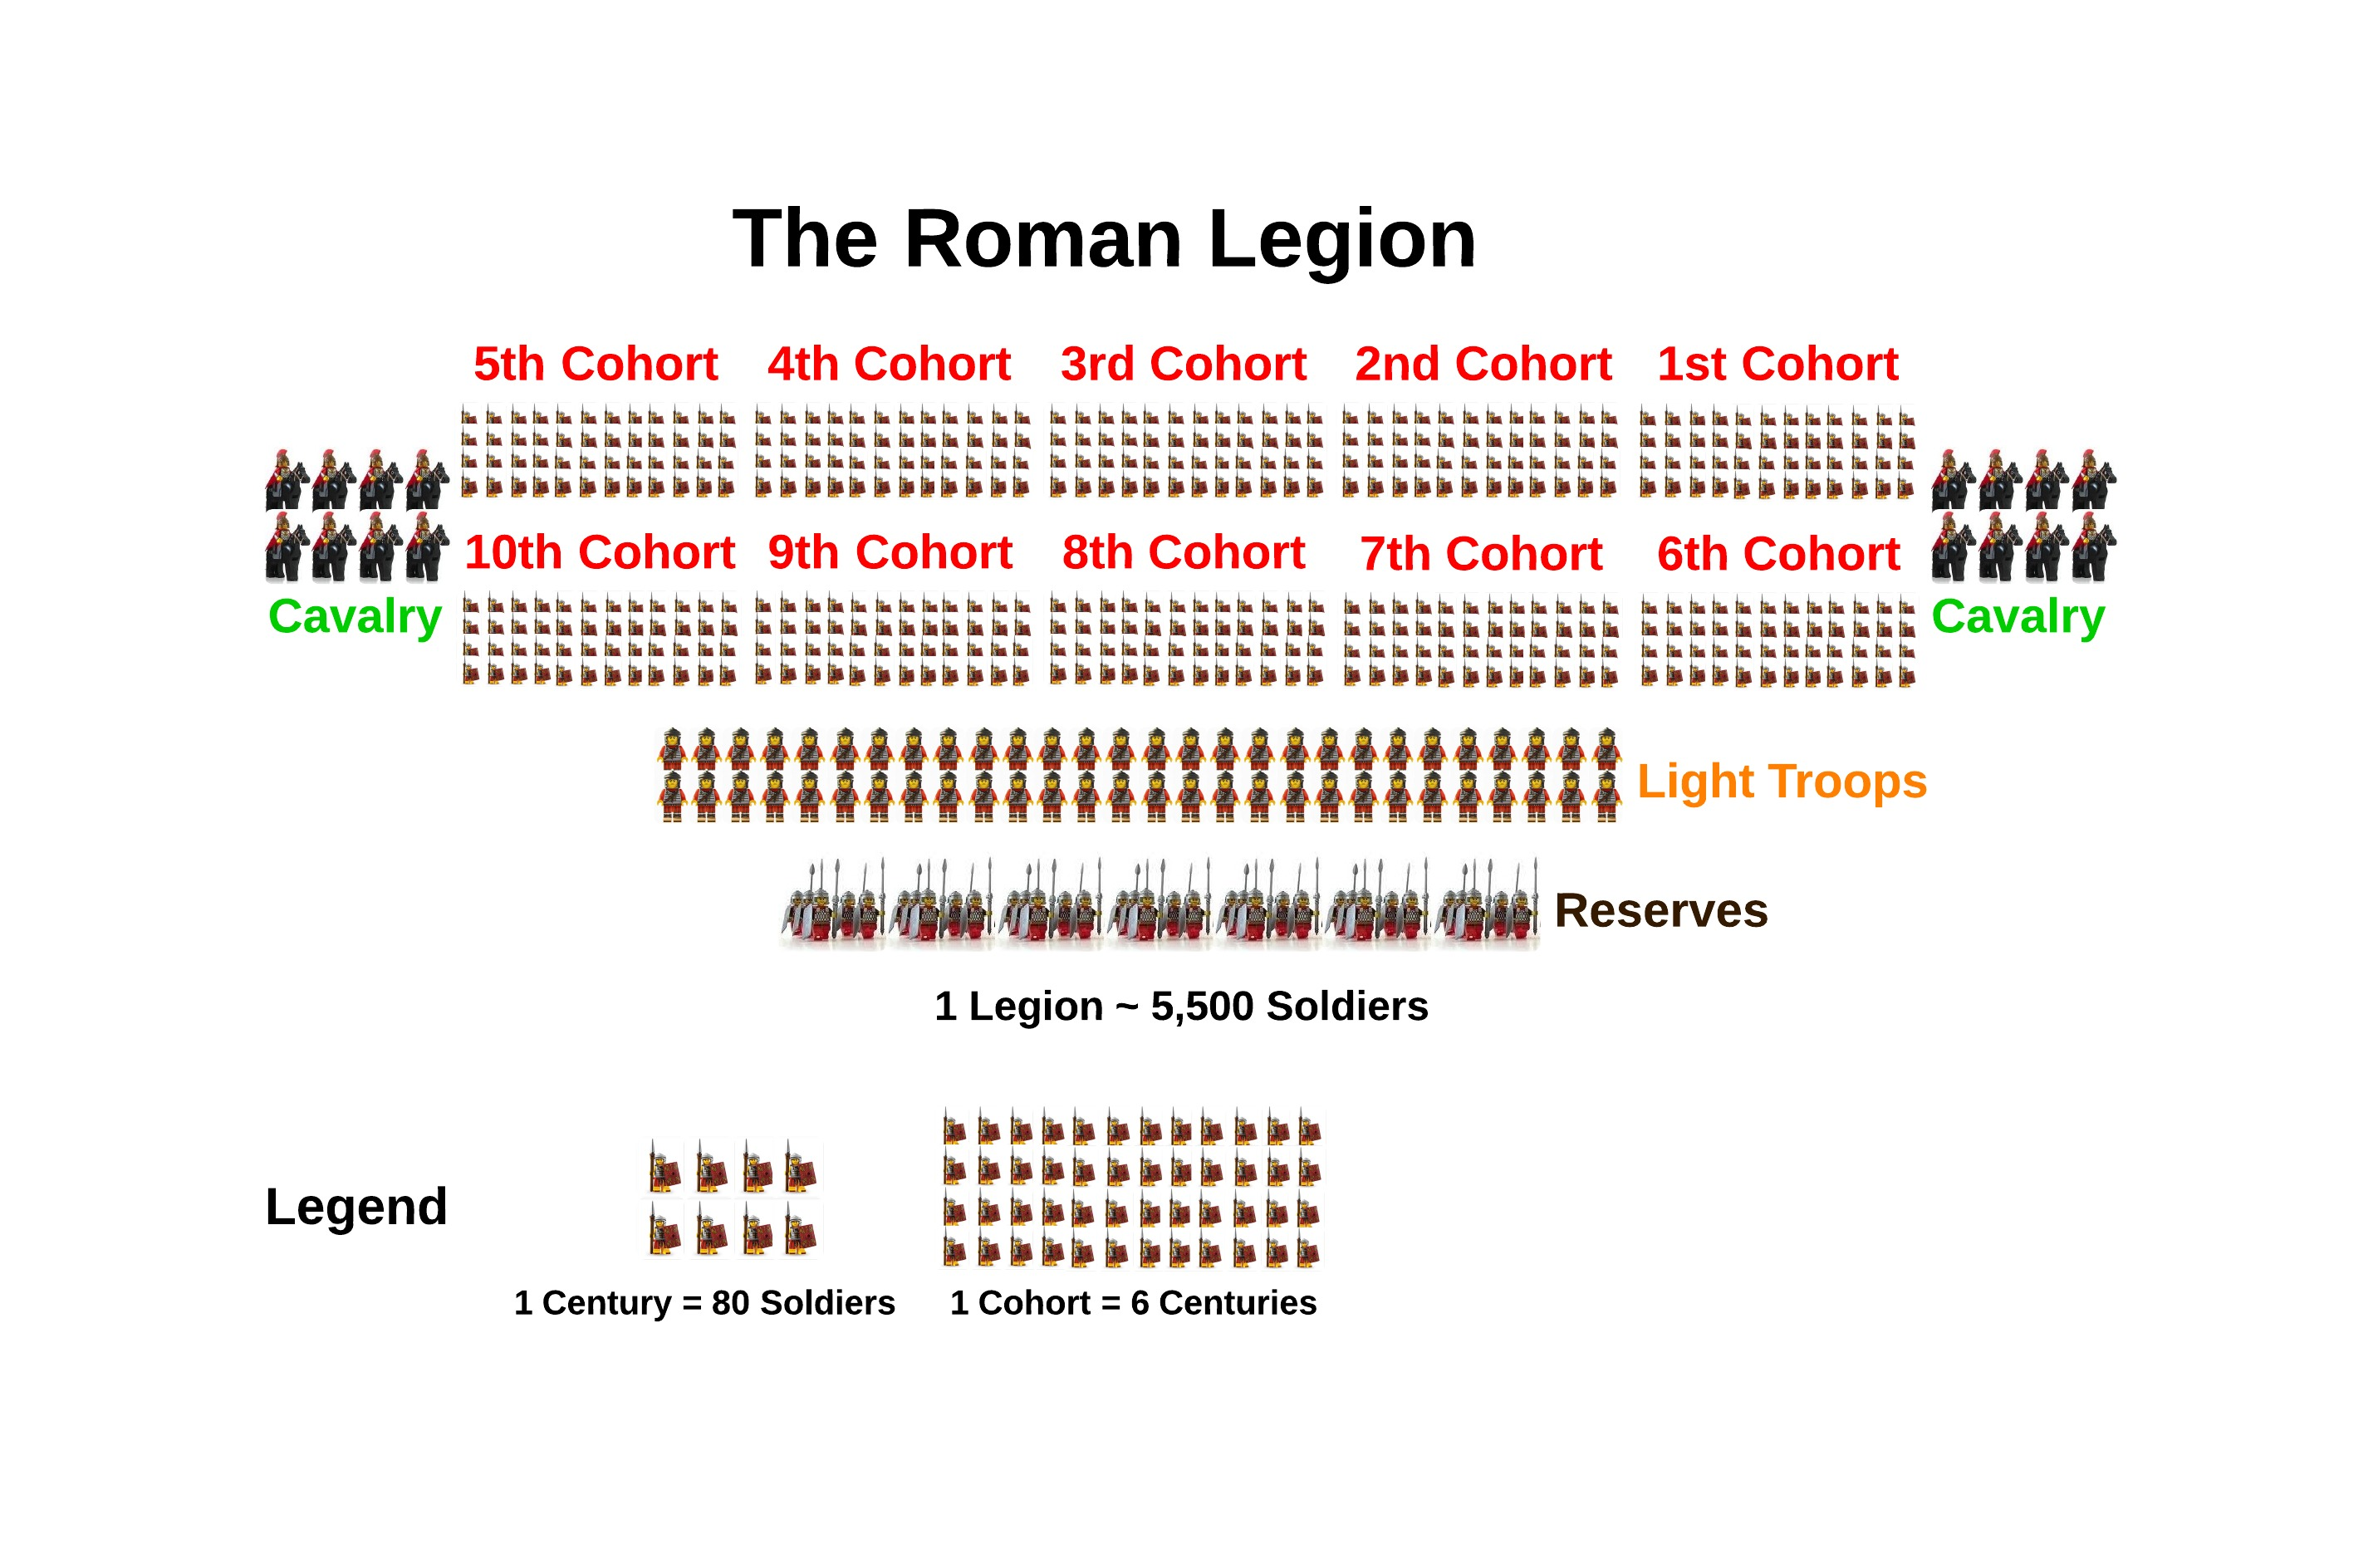 Decimation: Roman Army, Cadornas Army or Both?